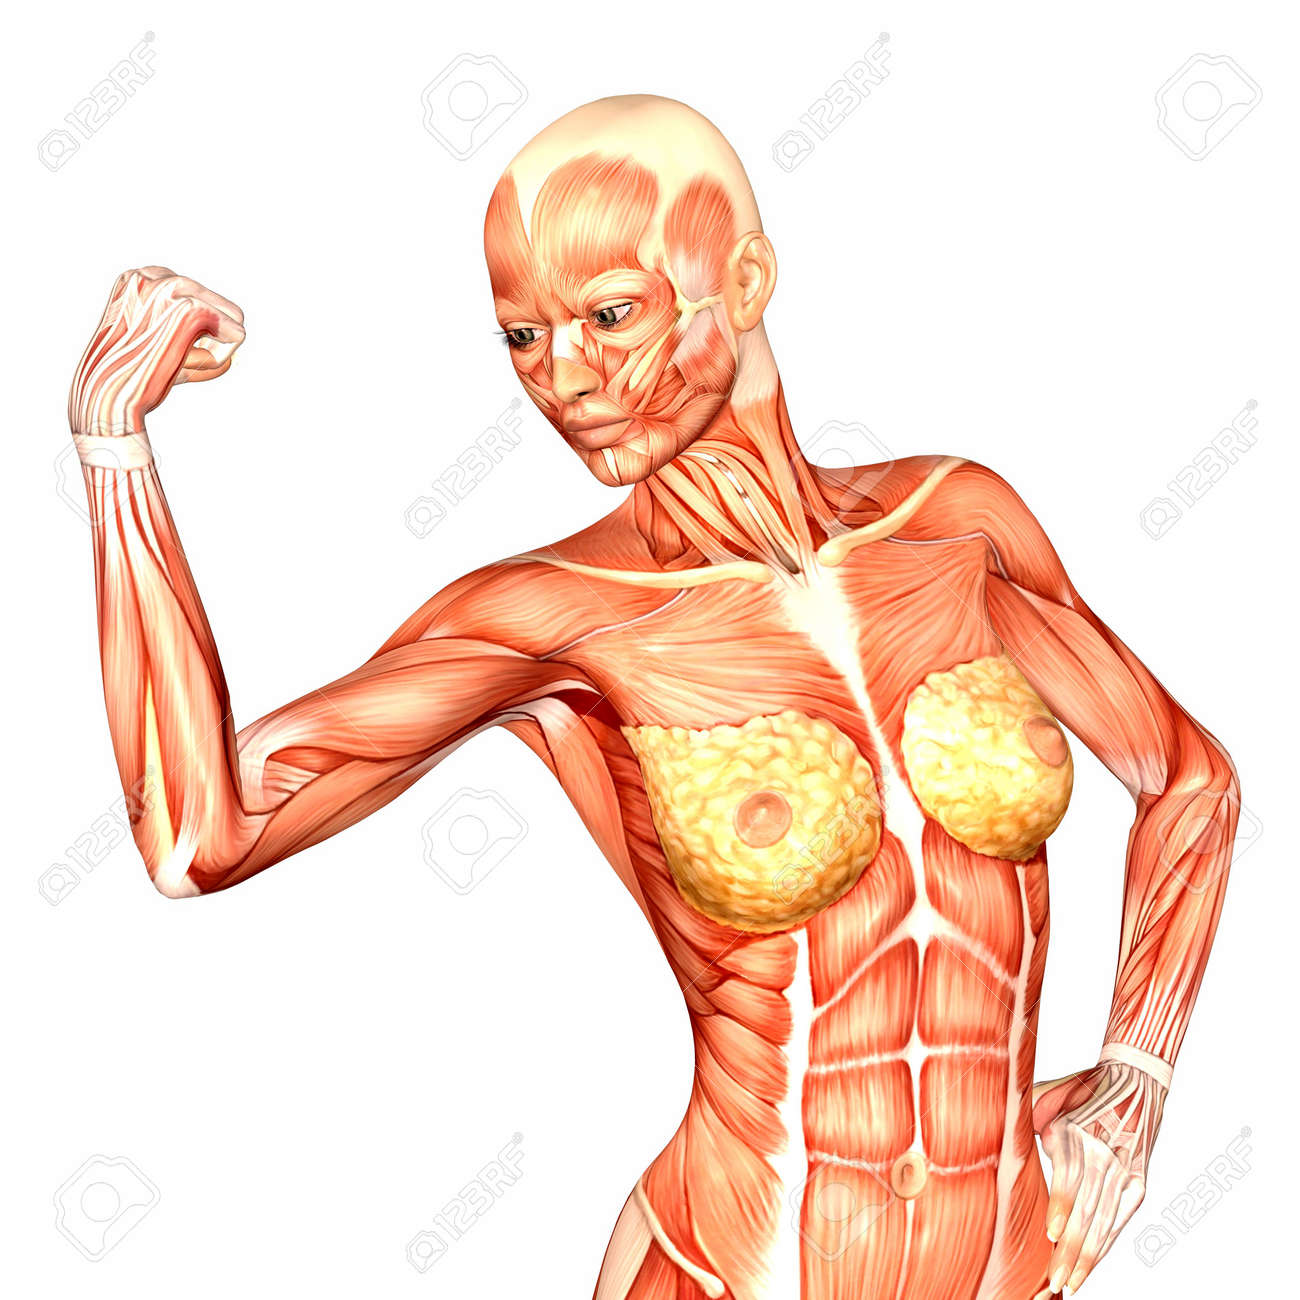 hight resolution of illustration of the anatomy of the female human upper body isolated female upper body diagram woman of upper torso diagram